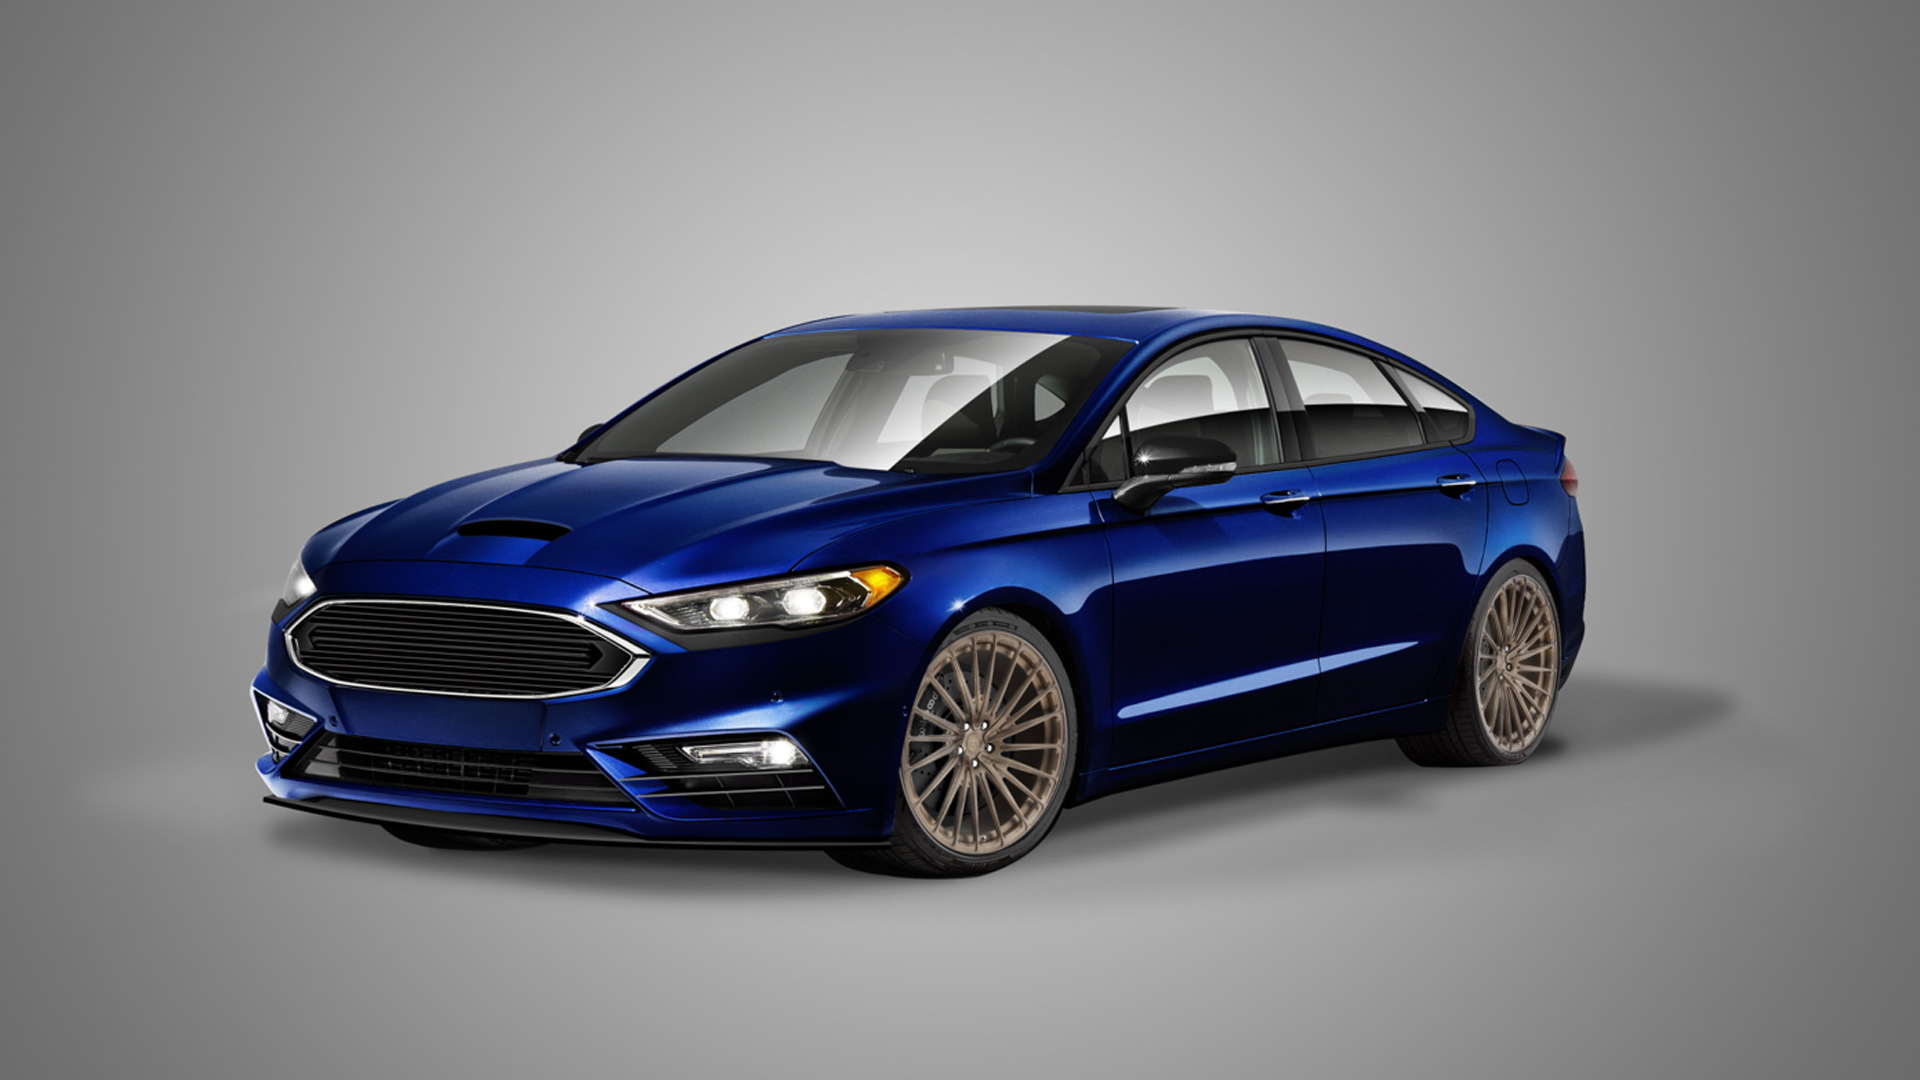 2017 Ford Fusion Sport by Legacy Innovations, 2016 SEMA show